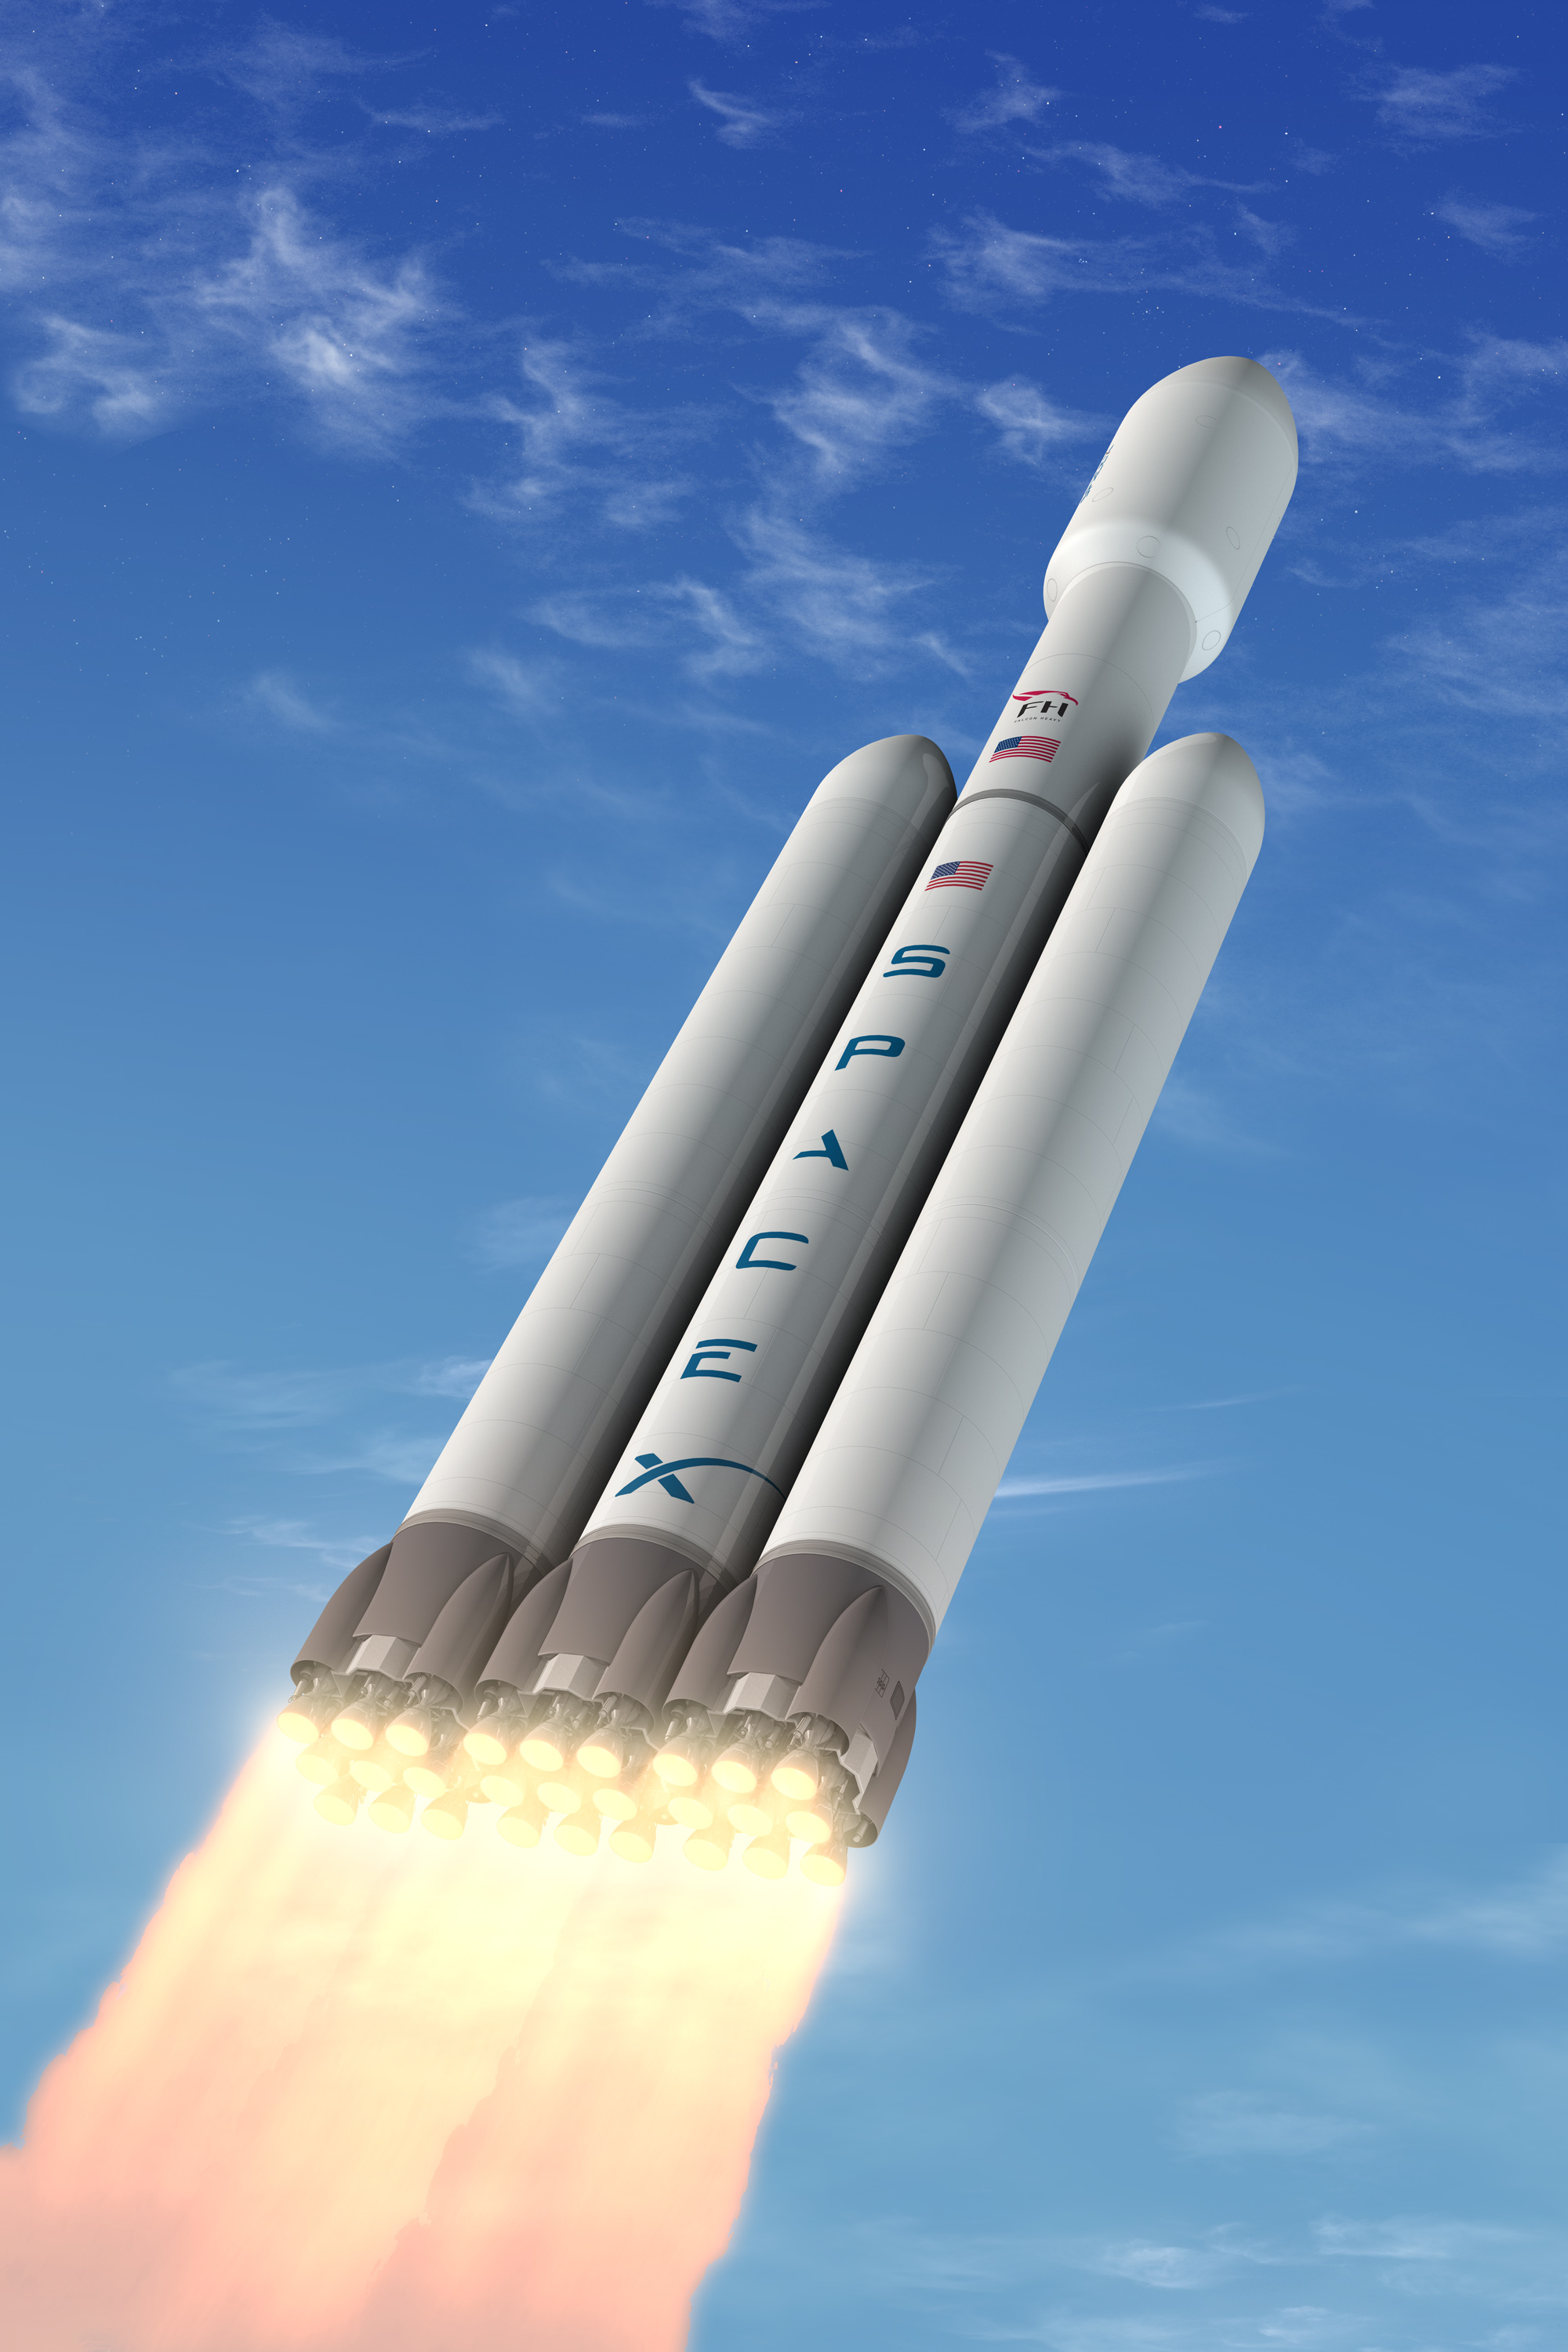 https://i0.wp.com/d1jqu7g1y74ds1.cloudfront.net/wp-content/uploads/2011/04/Falcon_Heavy.3k.jpg